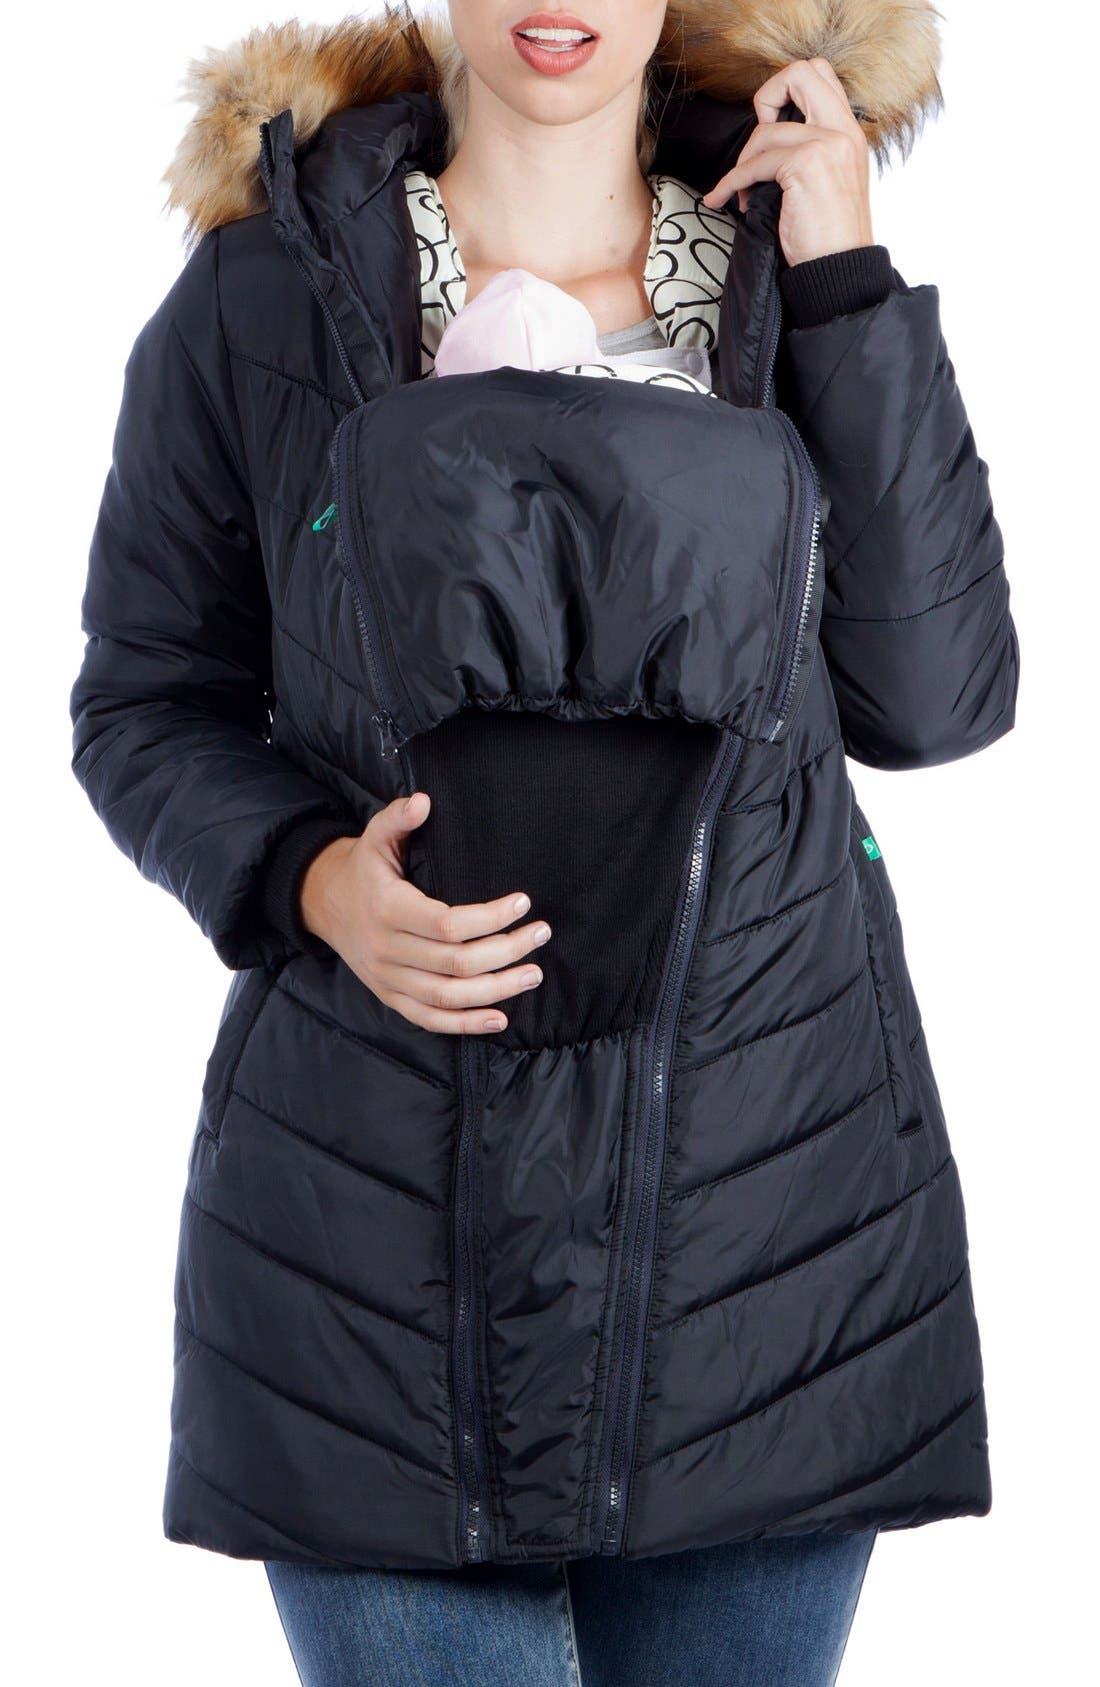 Faux Fur Trim Convertible Puffer 3-in-1 Maternity Jacket,                             Alternate thumbnail 9, color,                             BLACK